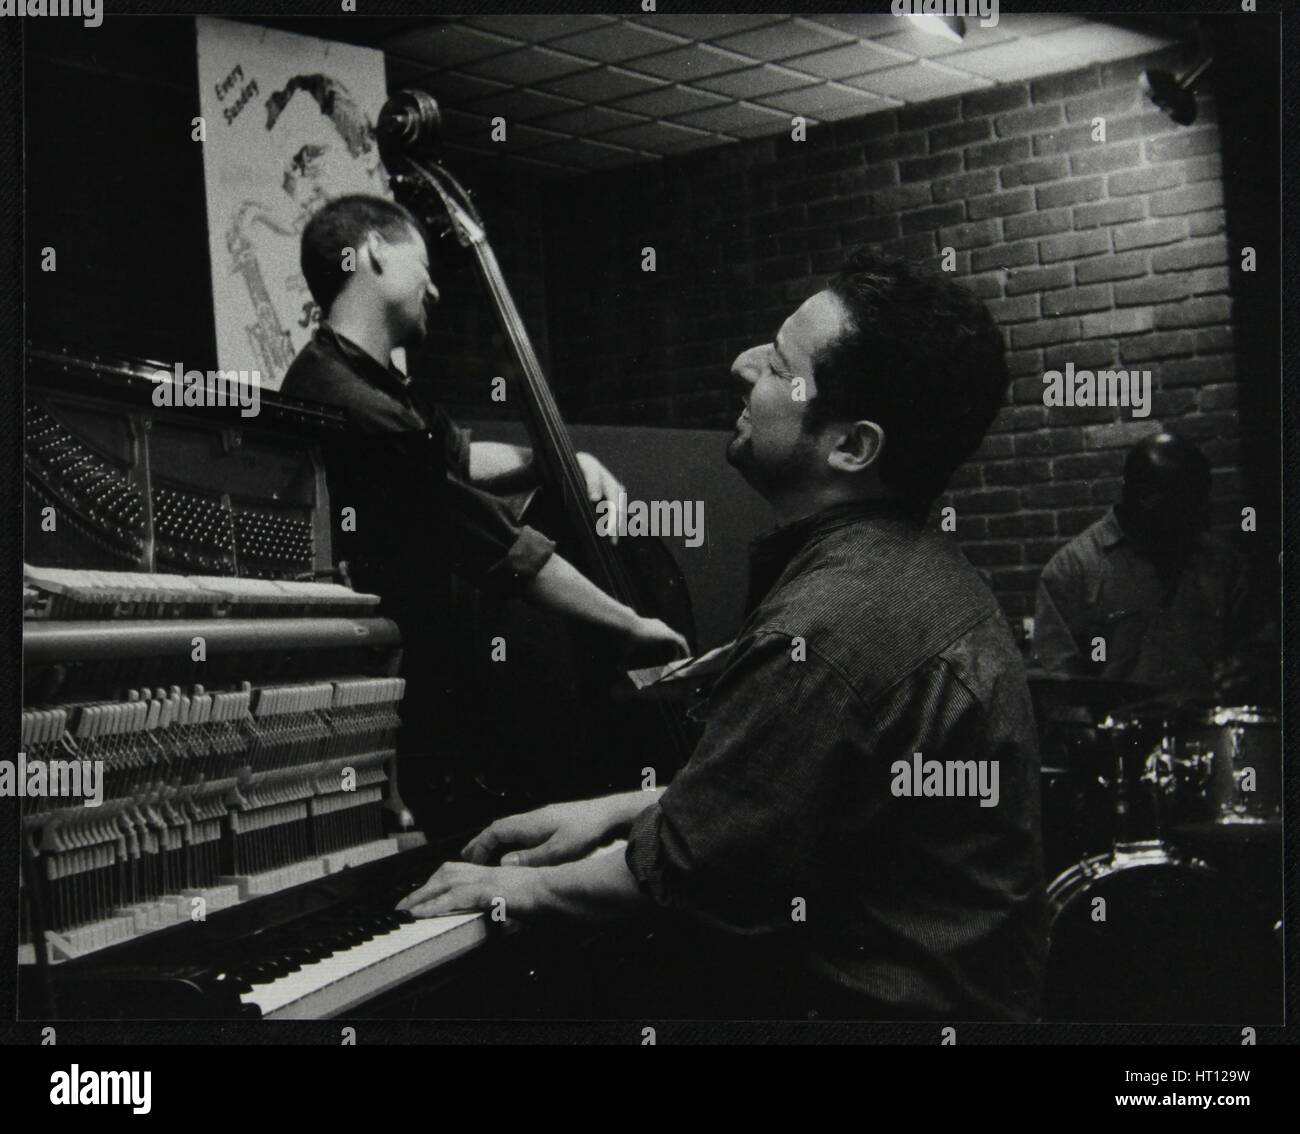 The Jonathan Gee Trio in concert at The Fairway, Welwyn Garden City, Hertfordshire, 7 February 1999. Artist: Denis - Stock Image